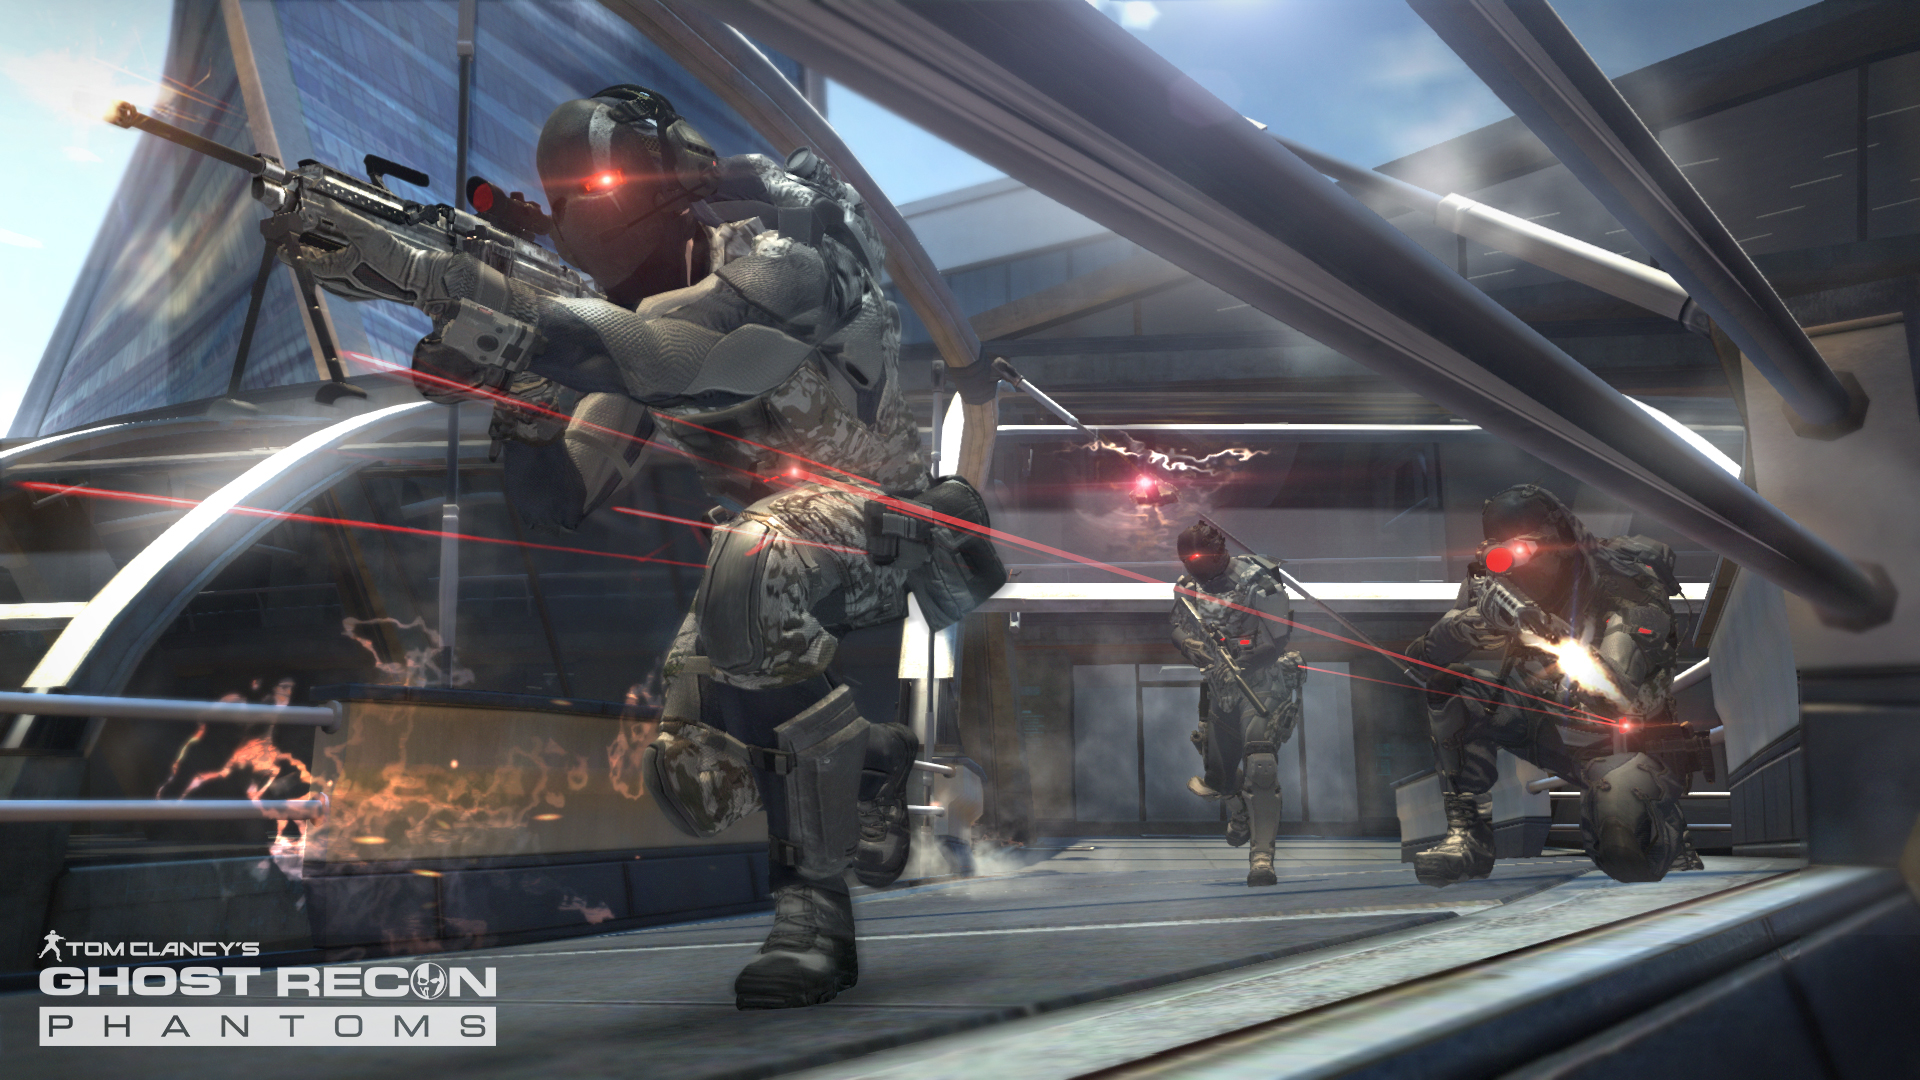 Ghost recon phantoms coupon codes